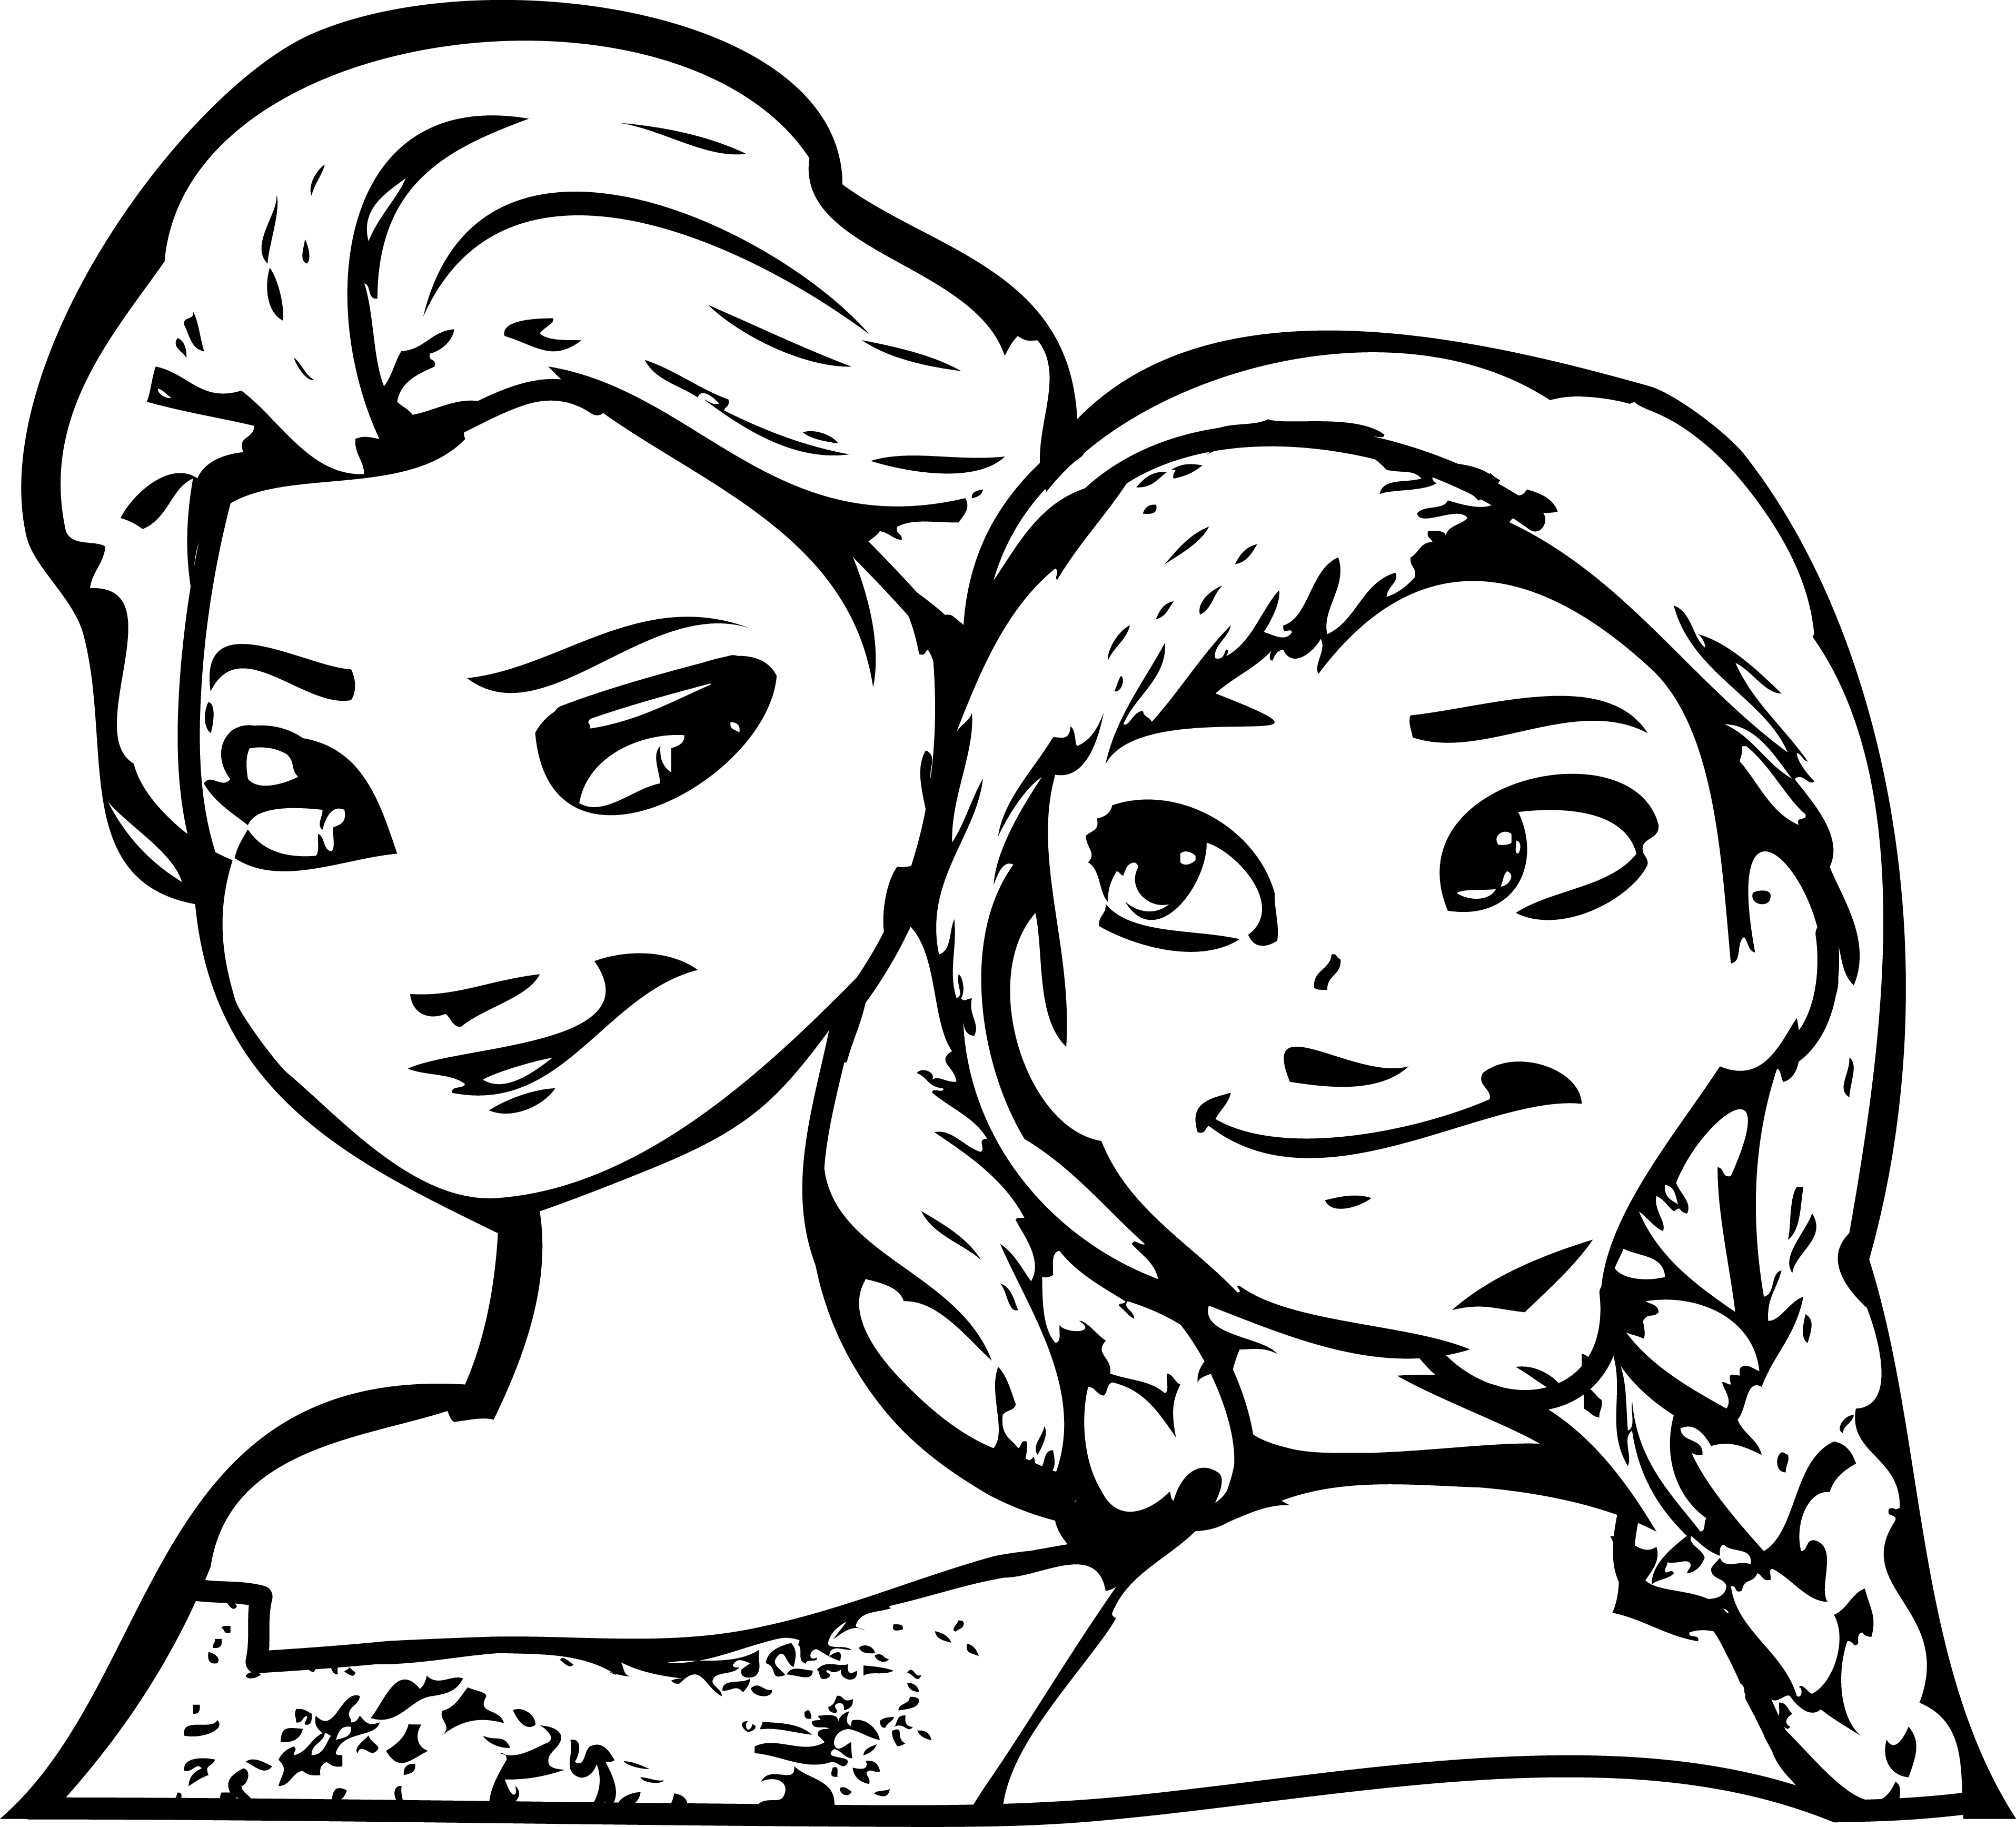 free coloring pages elsa and anna free printable coloring pages elsa and anna 2015 and free elsa pages anna coloring